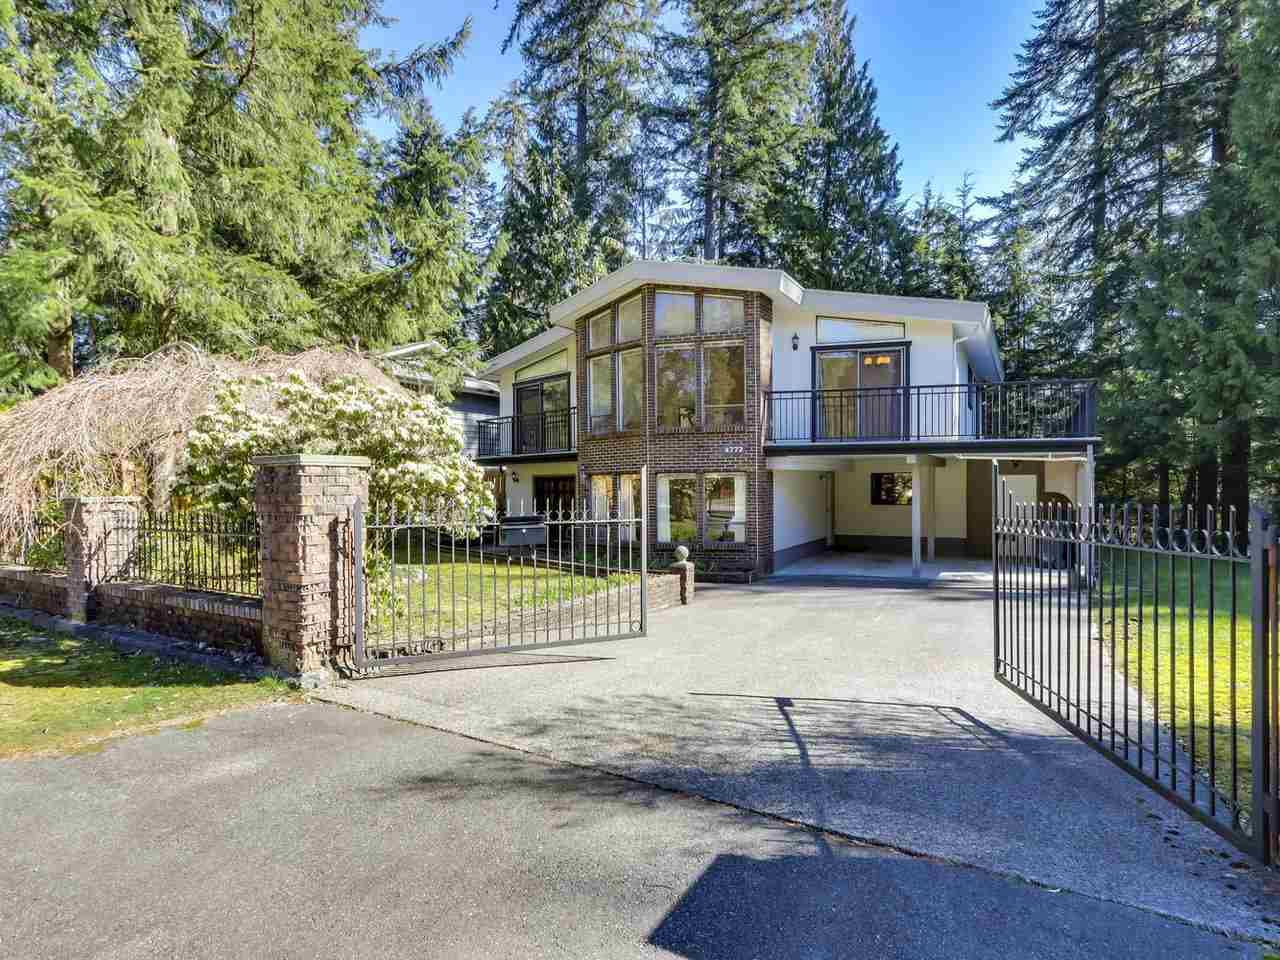 4772 HOSKINS ROAD - Lynn Valley House/Single Family for sale, 5 Bedrooms (R2563804)